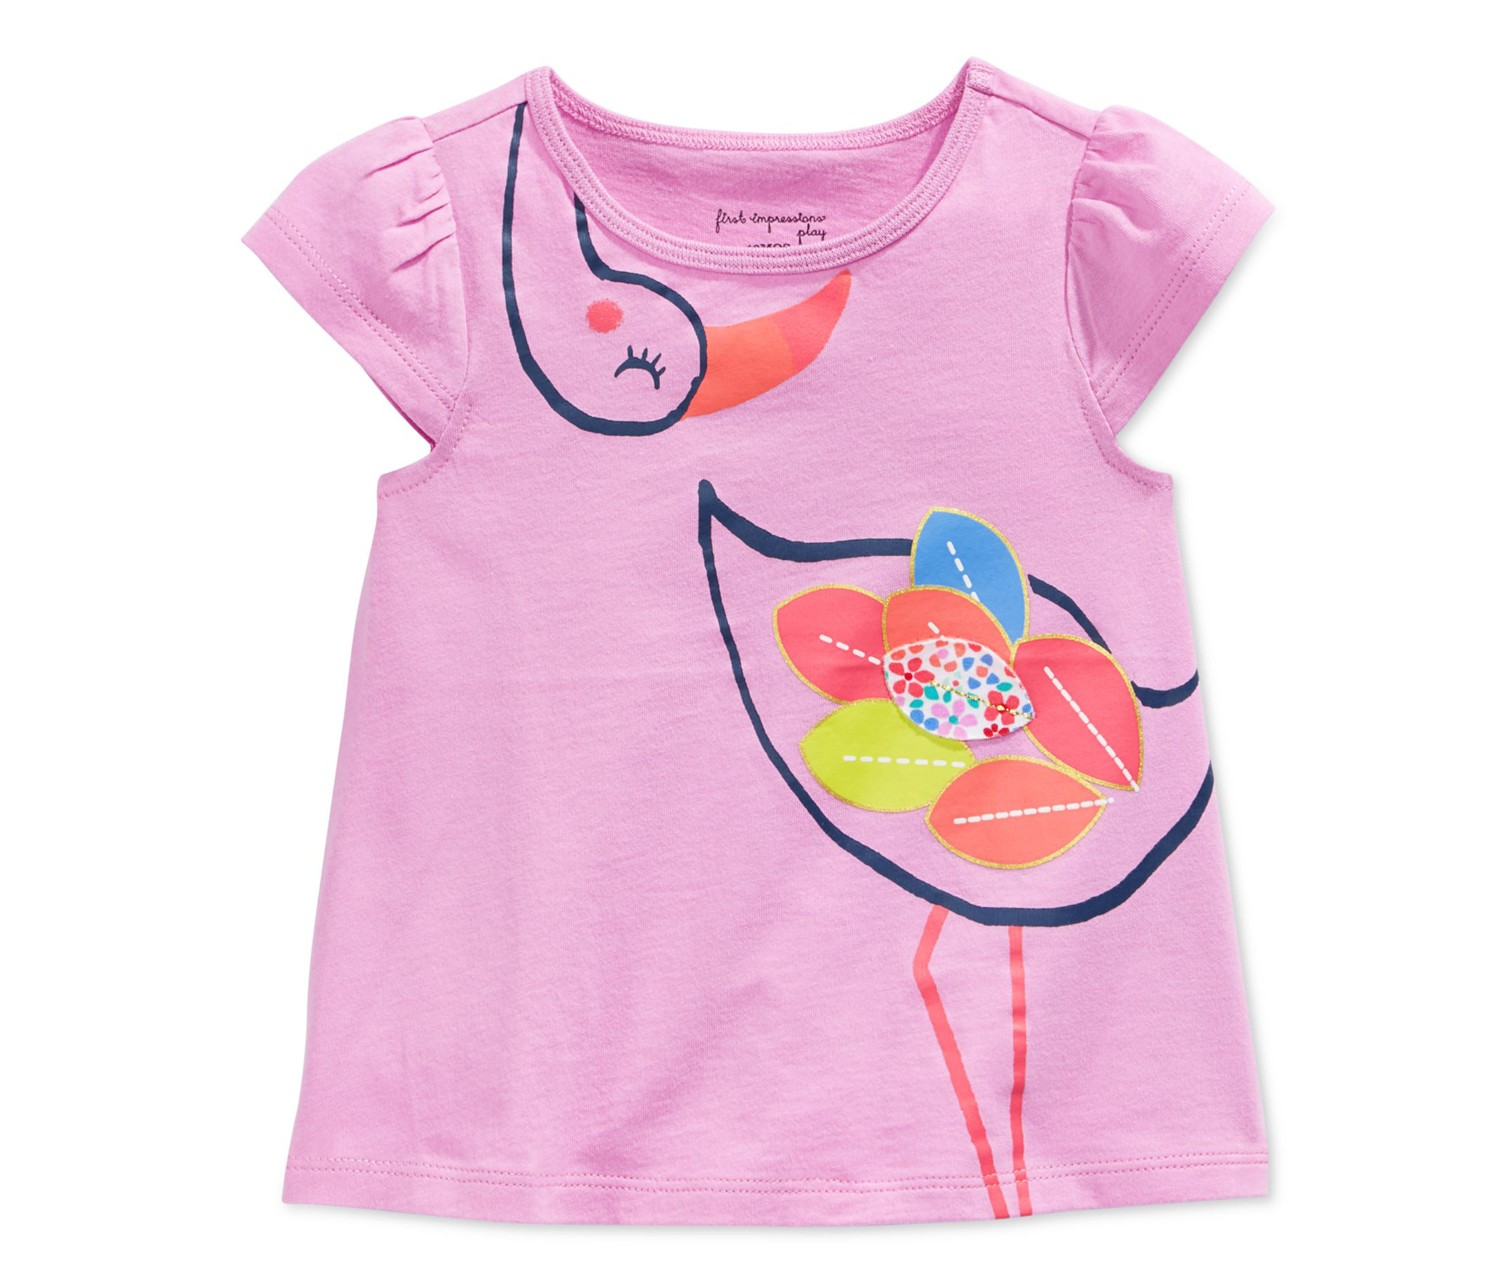 1b680edae Shop First Impression First Impressions Baby Girls' Flamingo T-Shirt ...